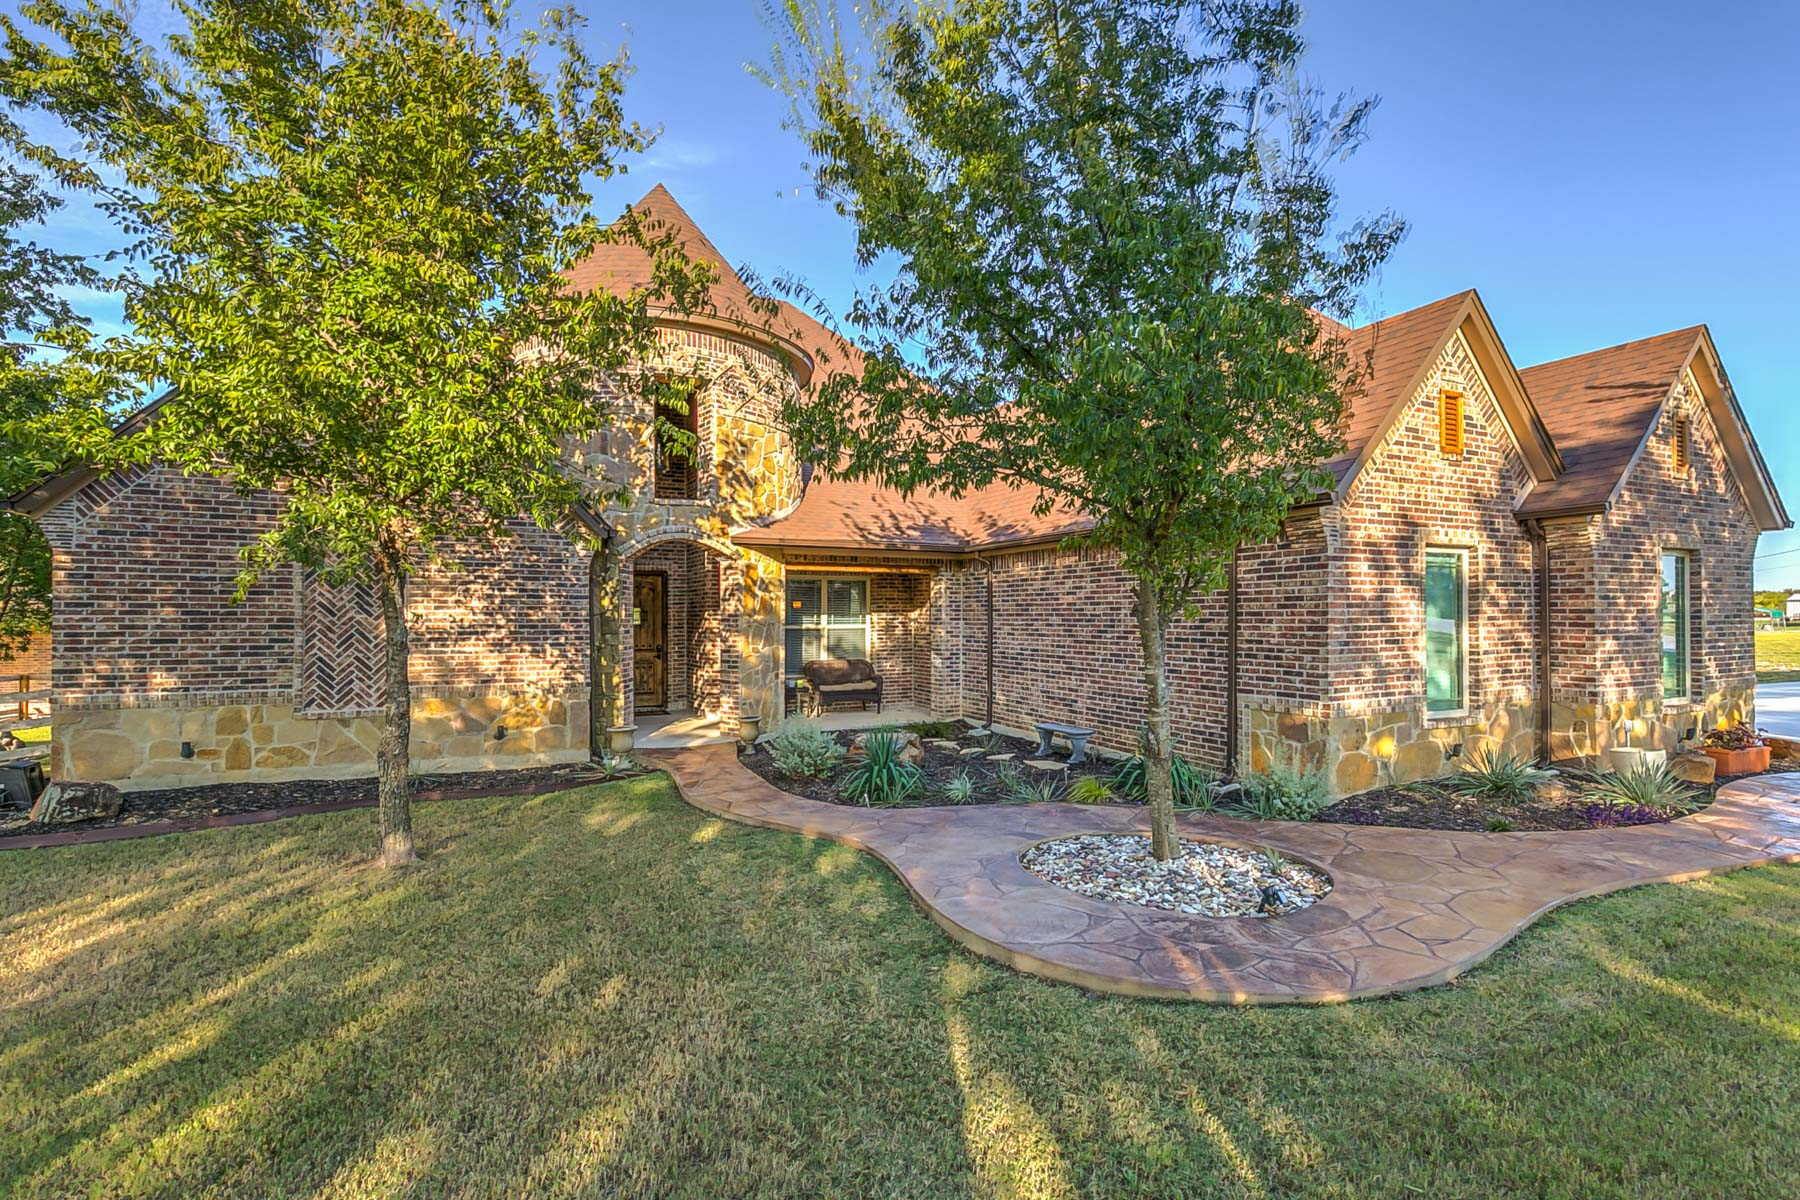 Single Family Home for Sale at Experience the Art of Luxury Living at 935 Heritage Creek Drive 935 Heritage Creek Drive Rhome, Texas 76078 United States